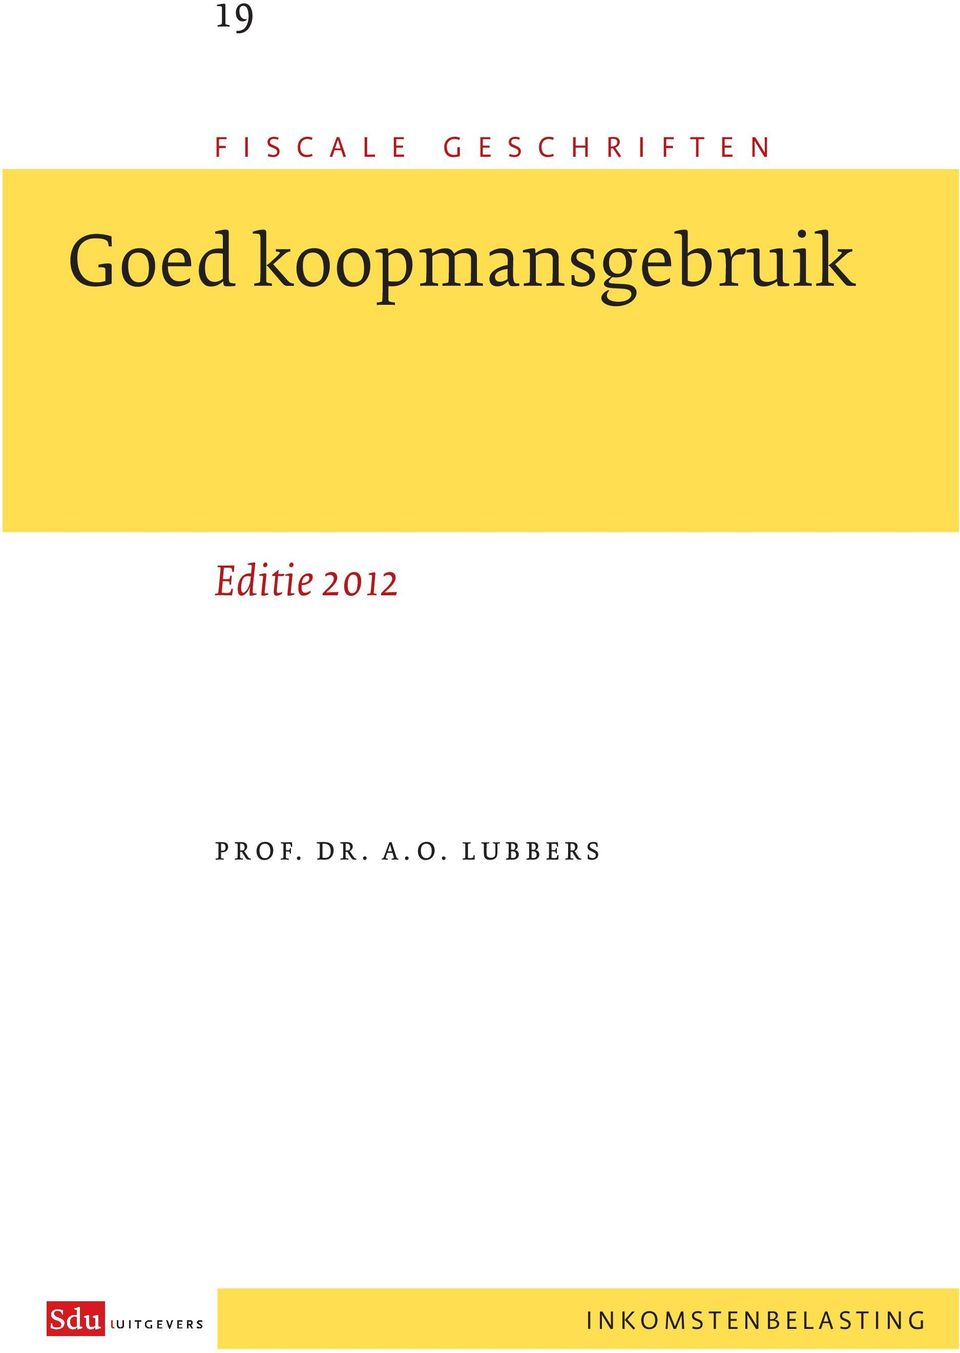 Editie 2012 prof. dr. a.